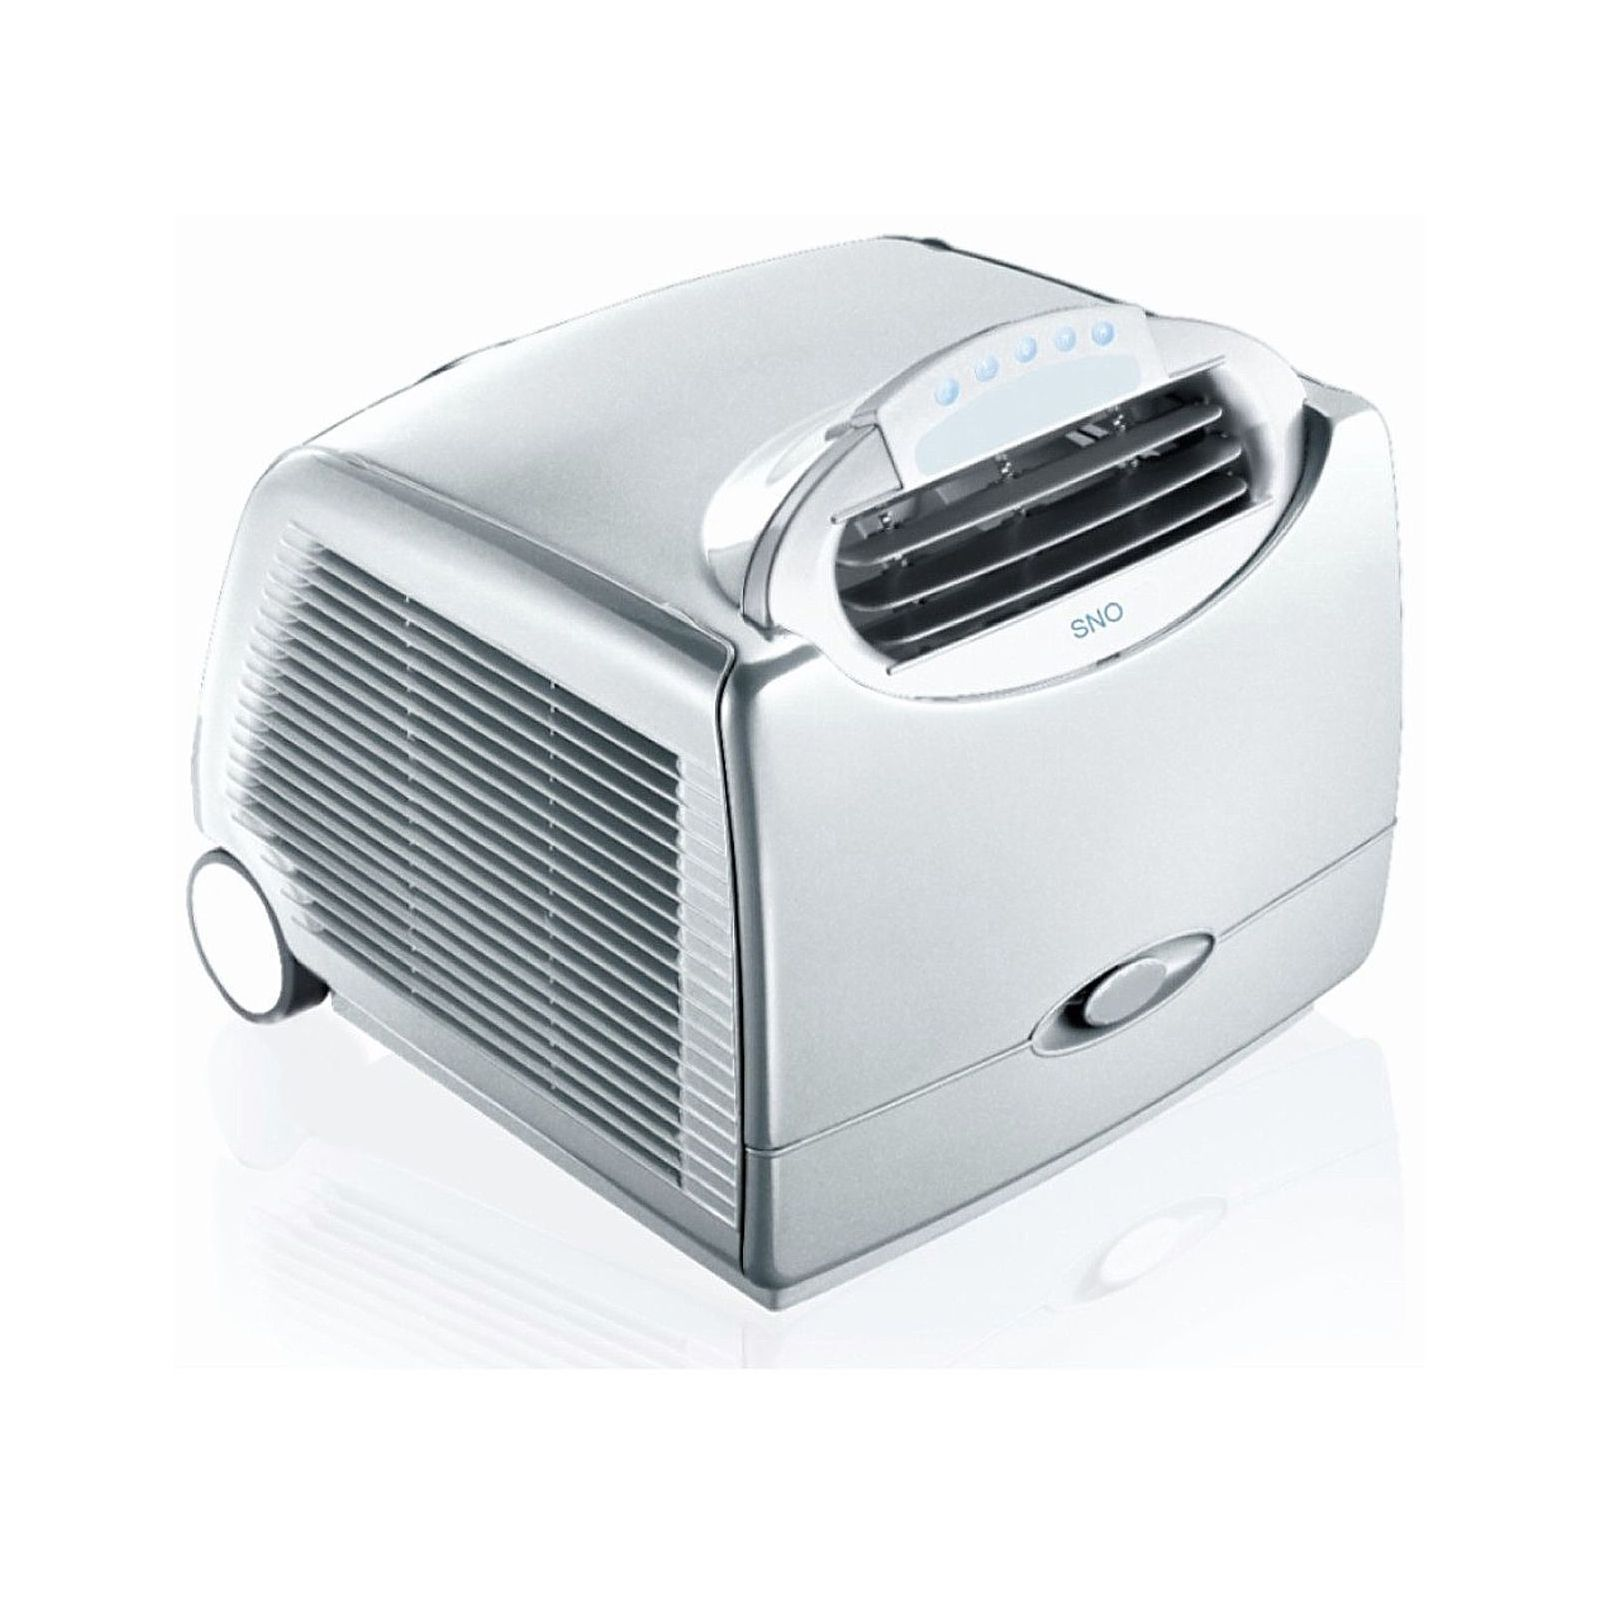 whynter sno btu silver portable air conditioner sears